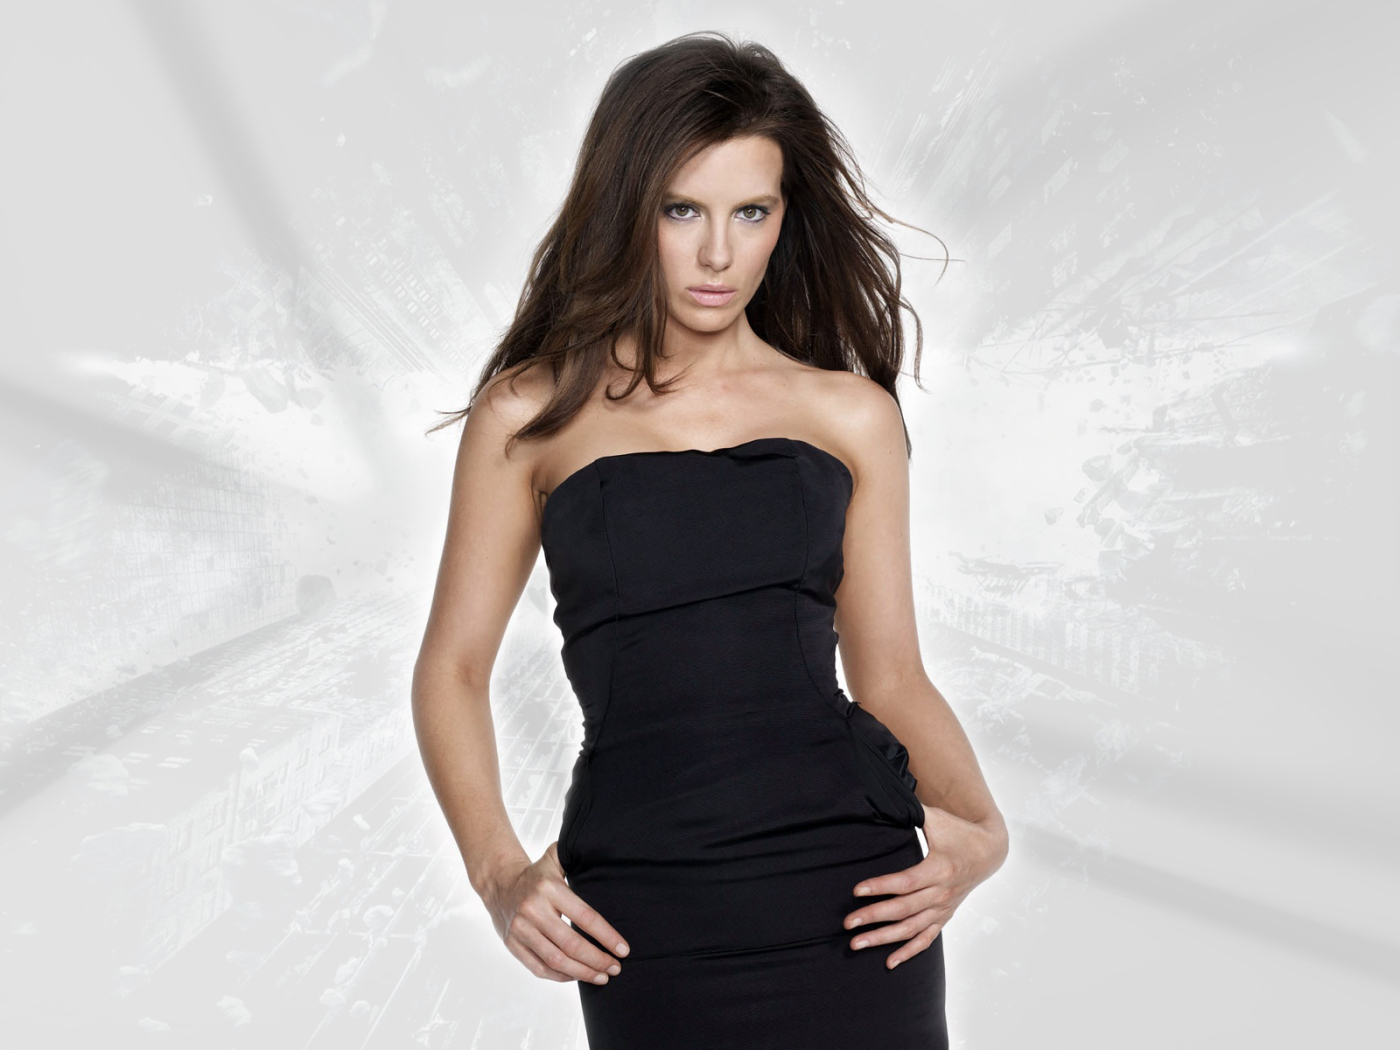 Kate beckinsale sexy video casually